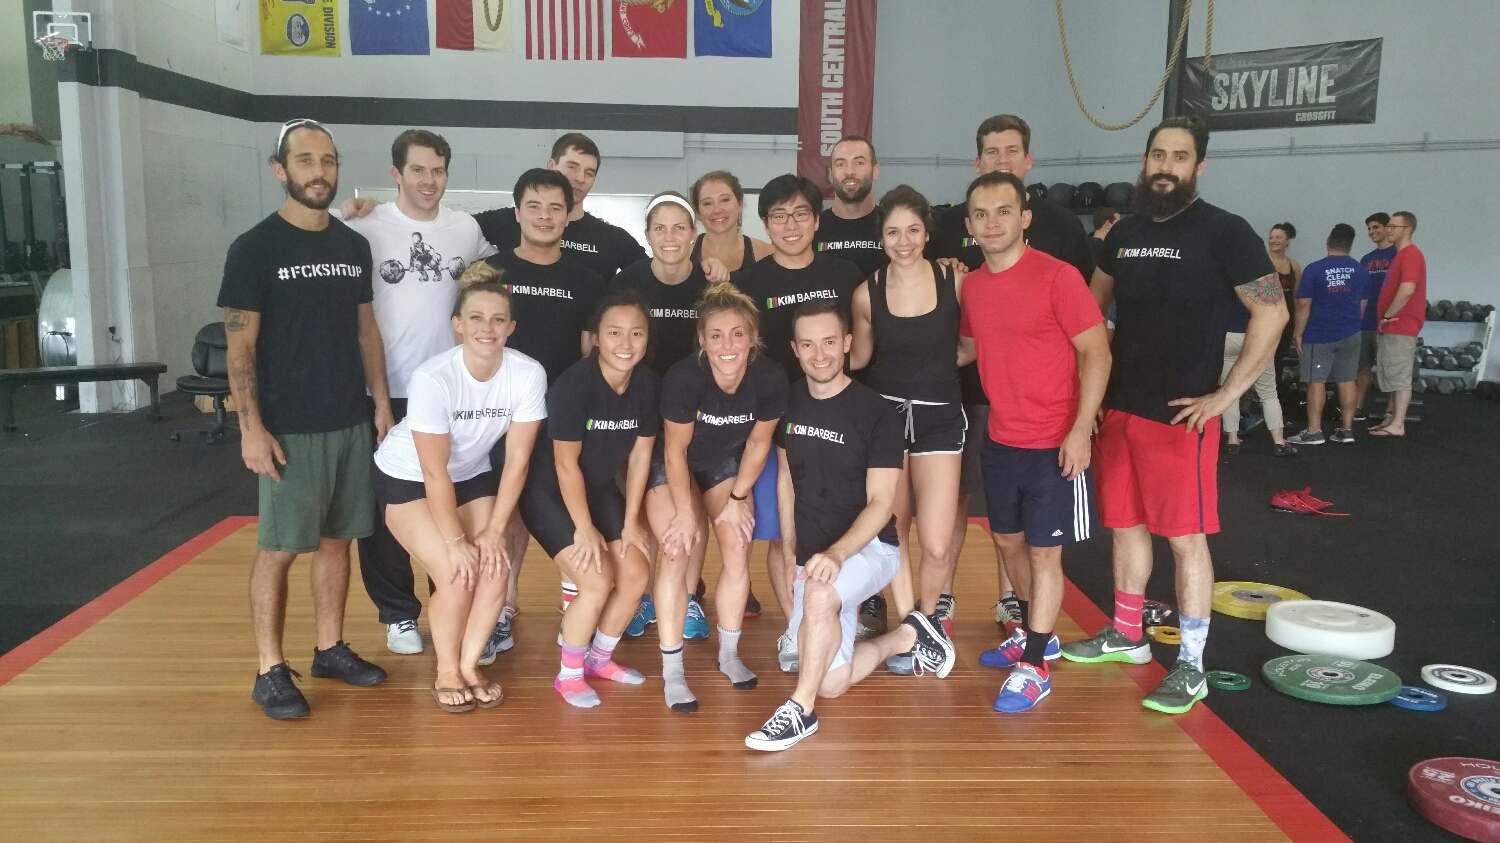 Kim Barbell team after meet on Sunday. Got a couple qualified for the American Open.